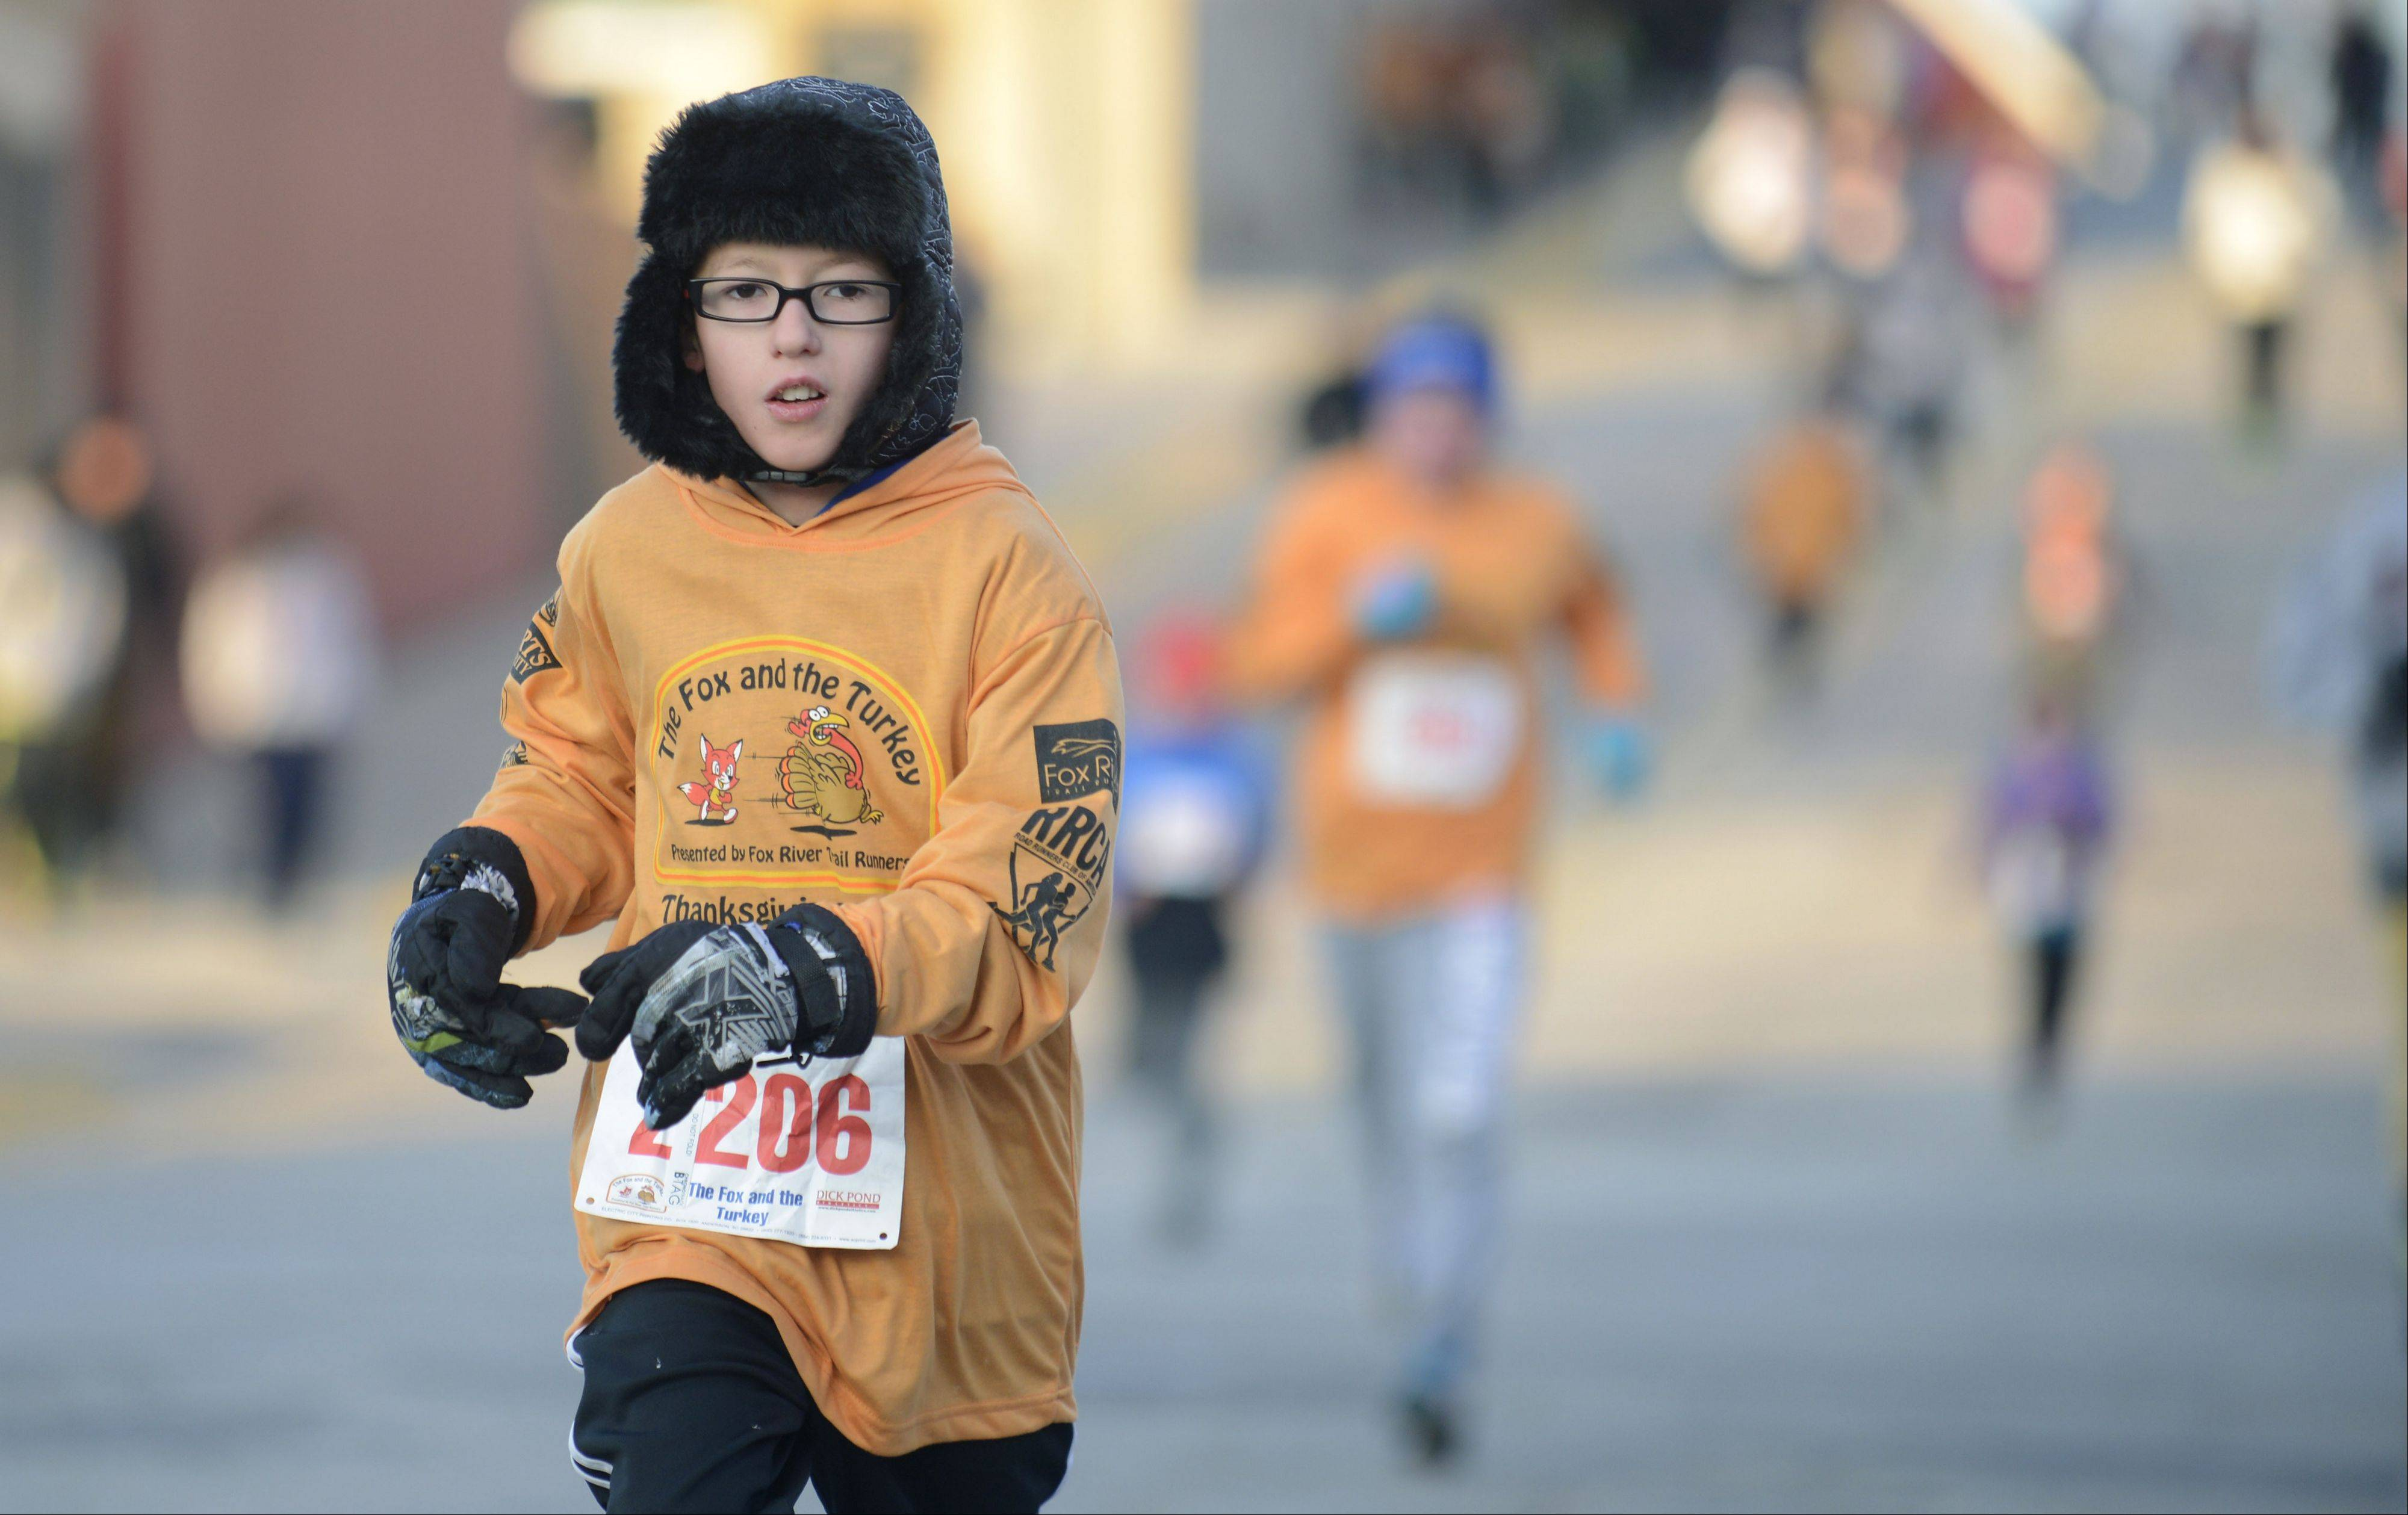 Matthew Conley, 11, of North Aurora nears the finish line of the Youth Mile in the annual Fox and Turkey Races in Batavia on Thanksgiving Day. This is the first year he's run in the event. He was joined by his younger brother, Ethan Potts, 5, as well.